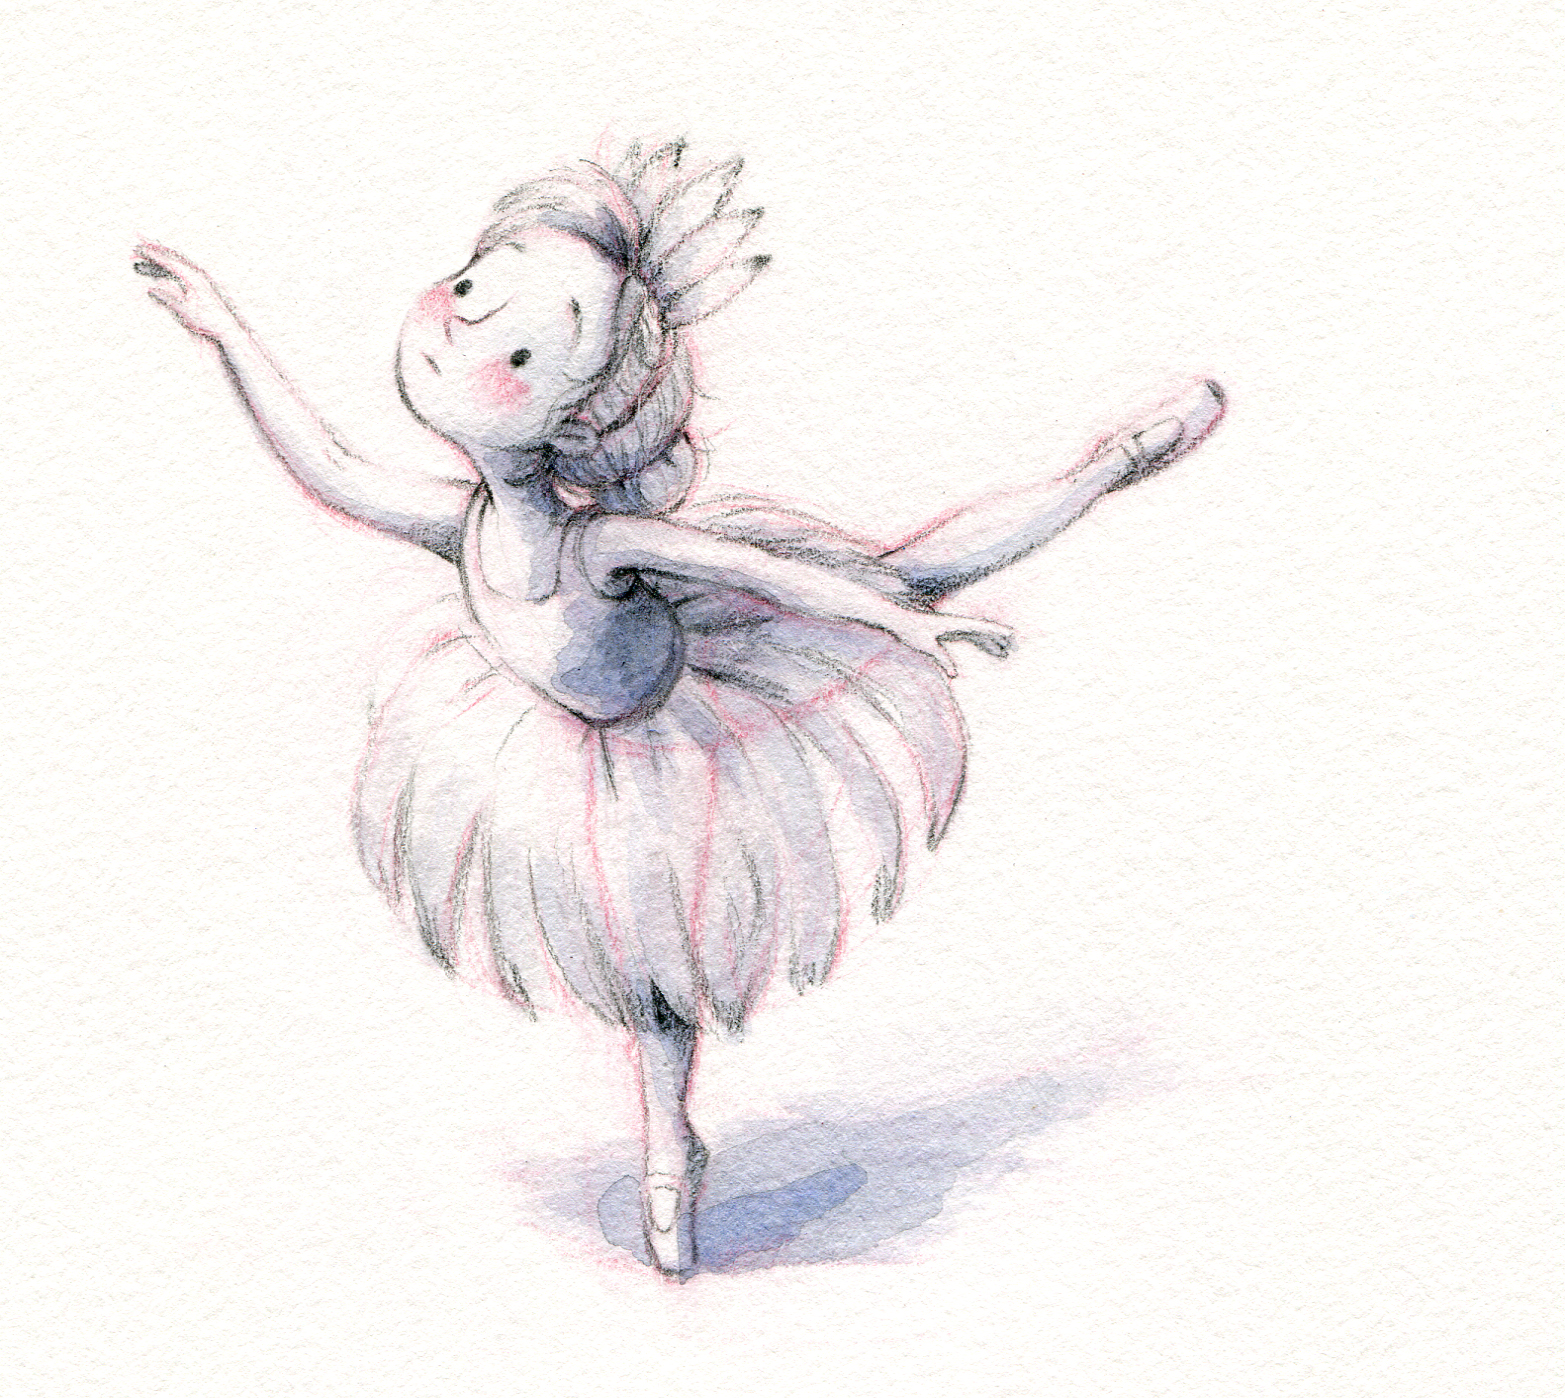 The reluctant ballerina